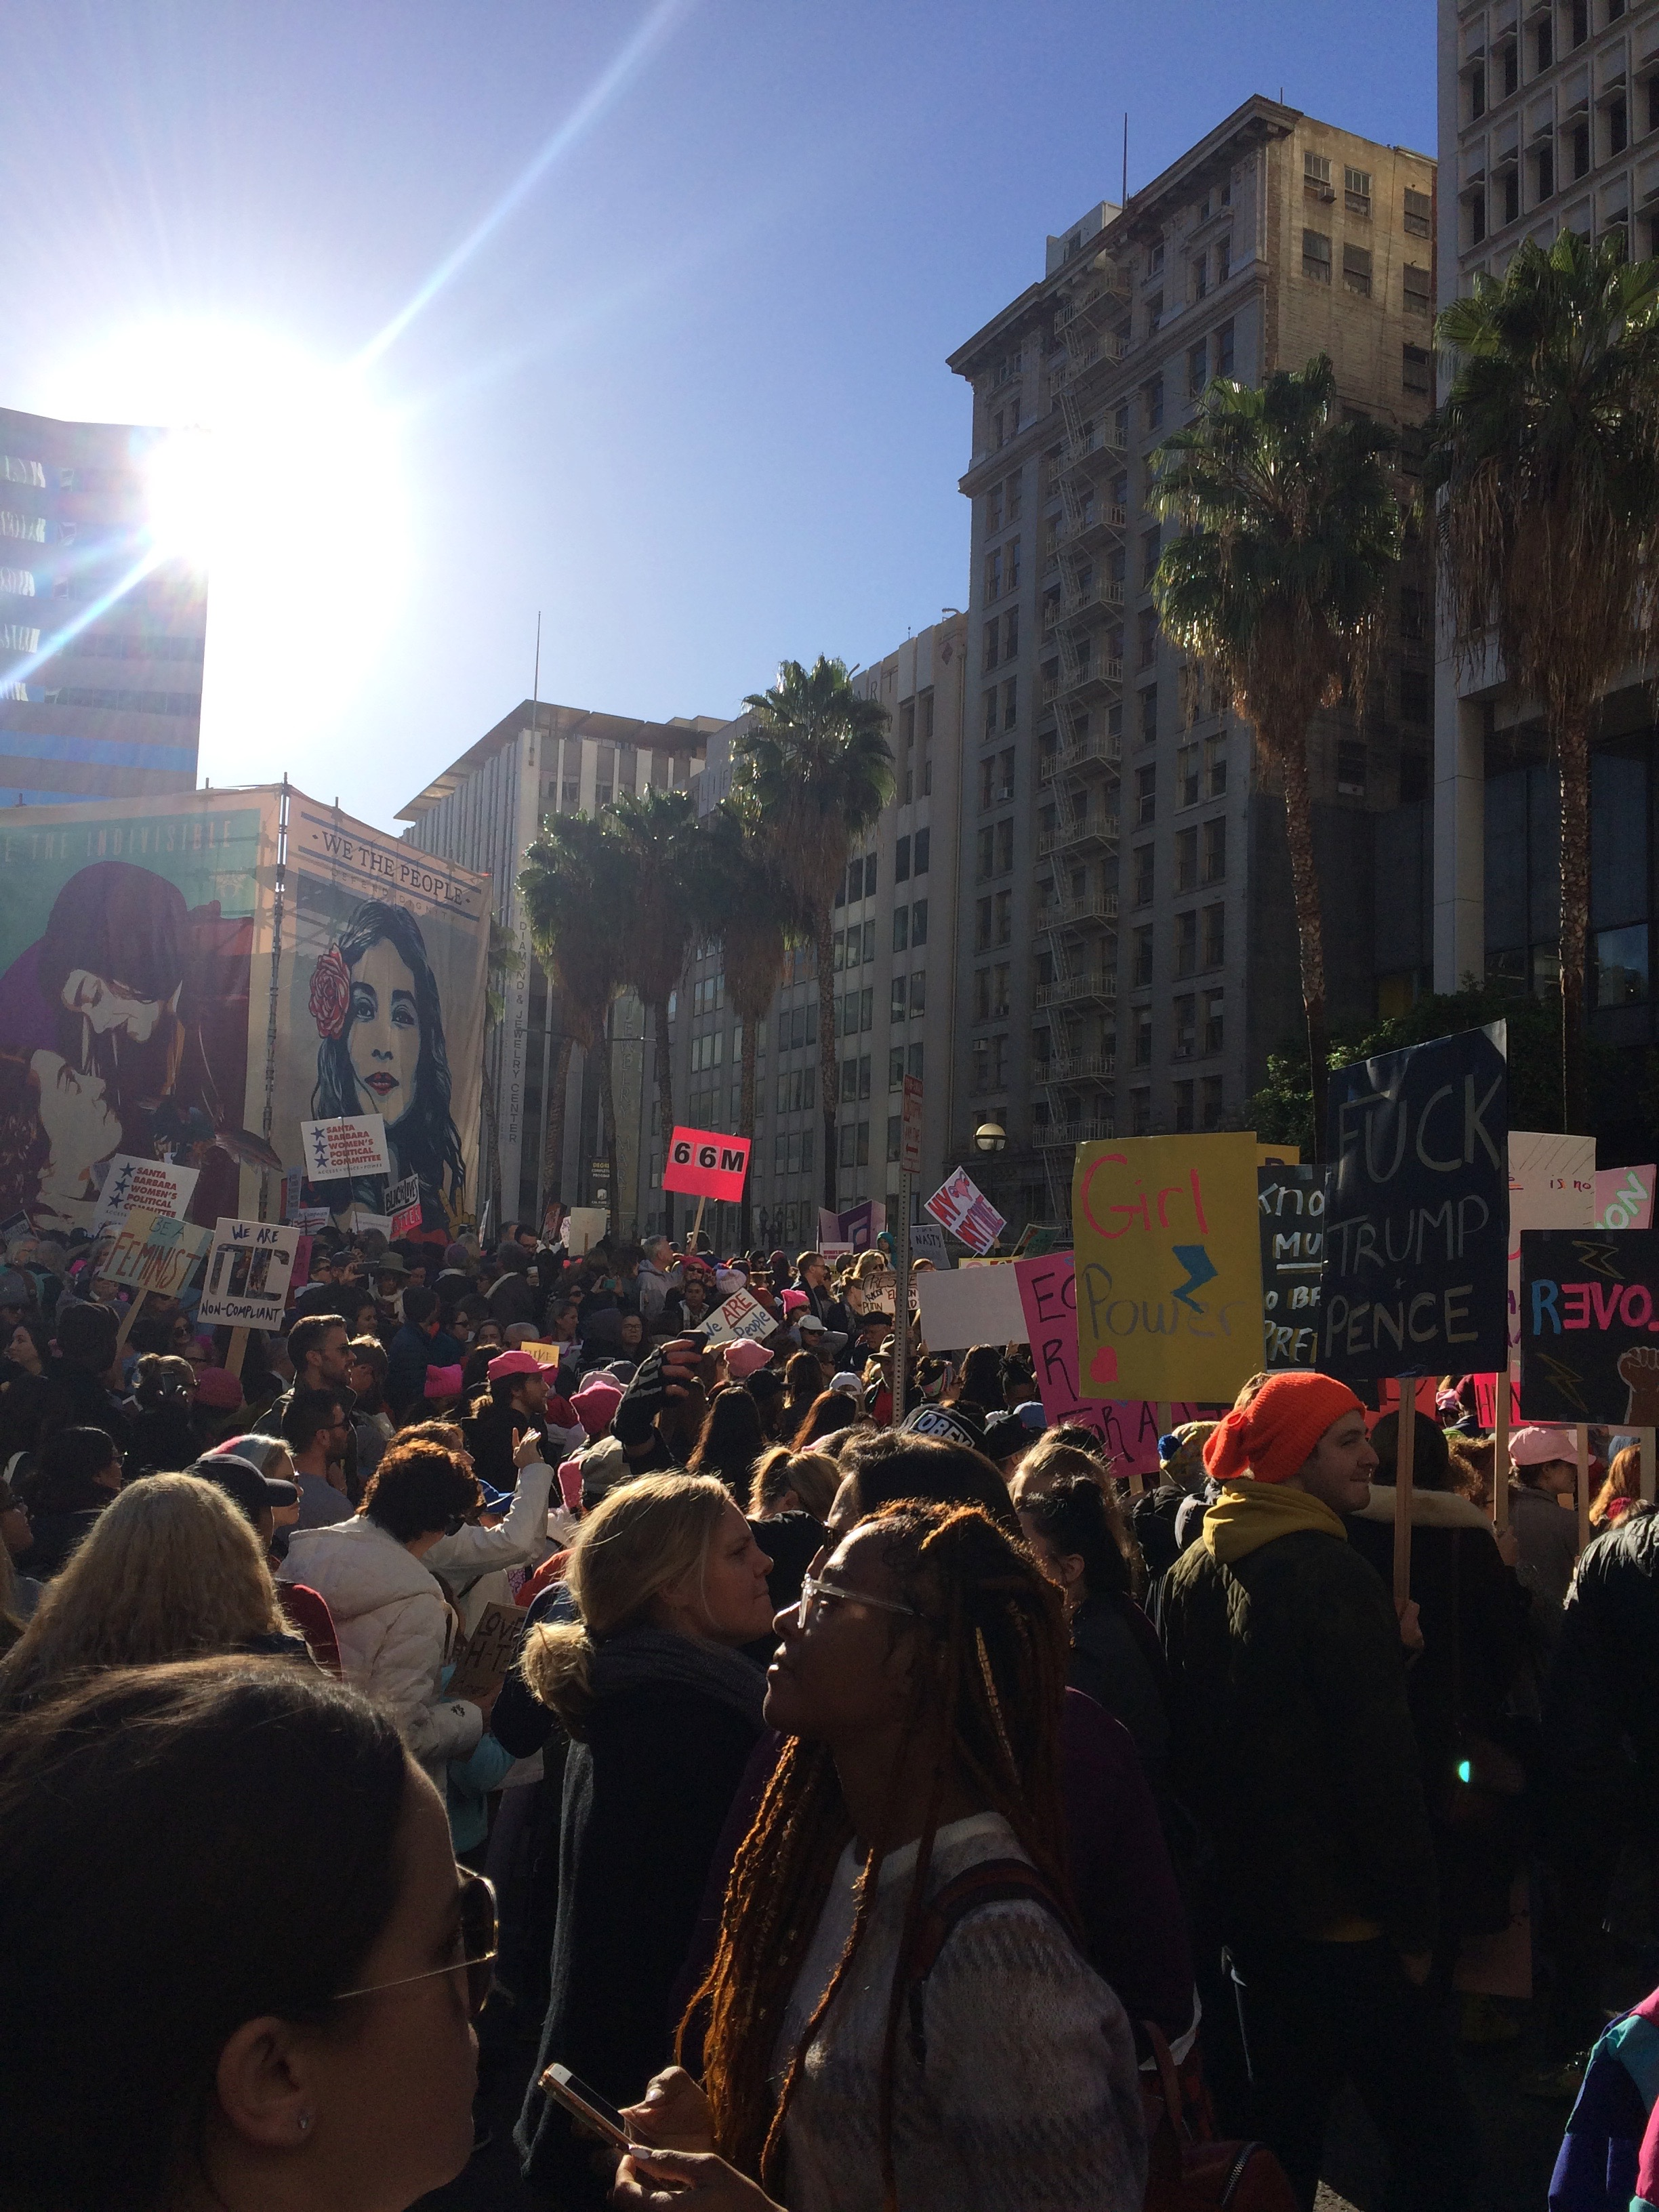 Crowds assembled and ready outside of Pershing Square. (Photo by Loud Owl)